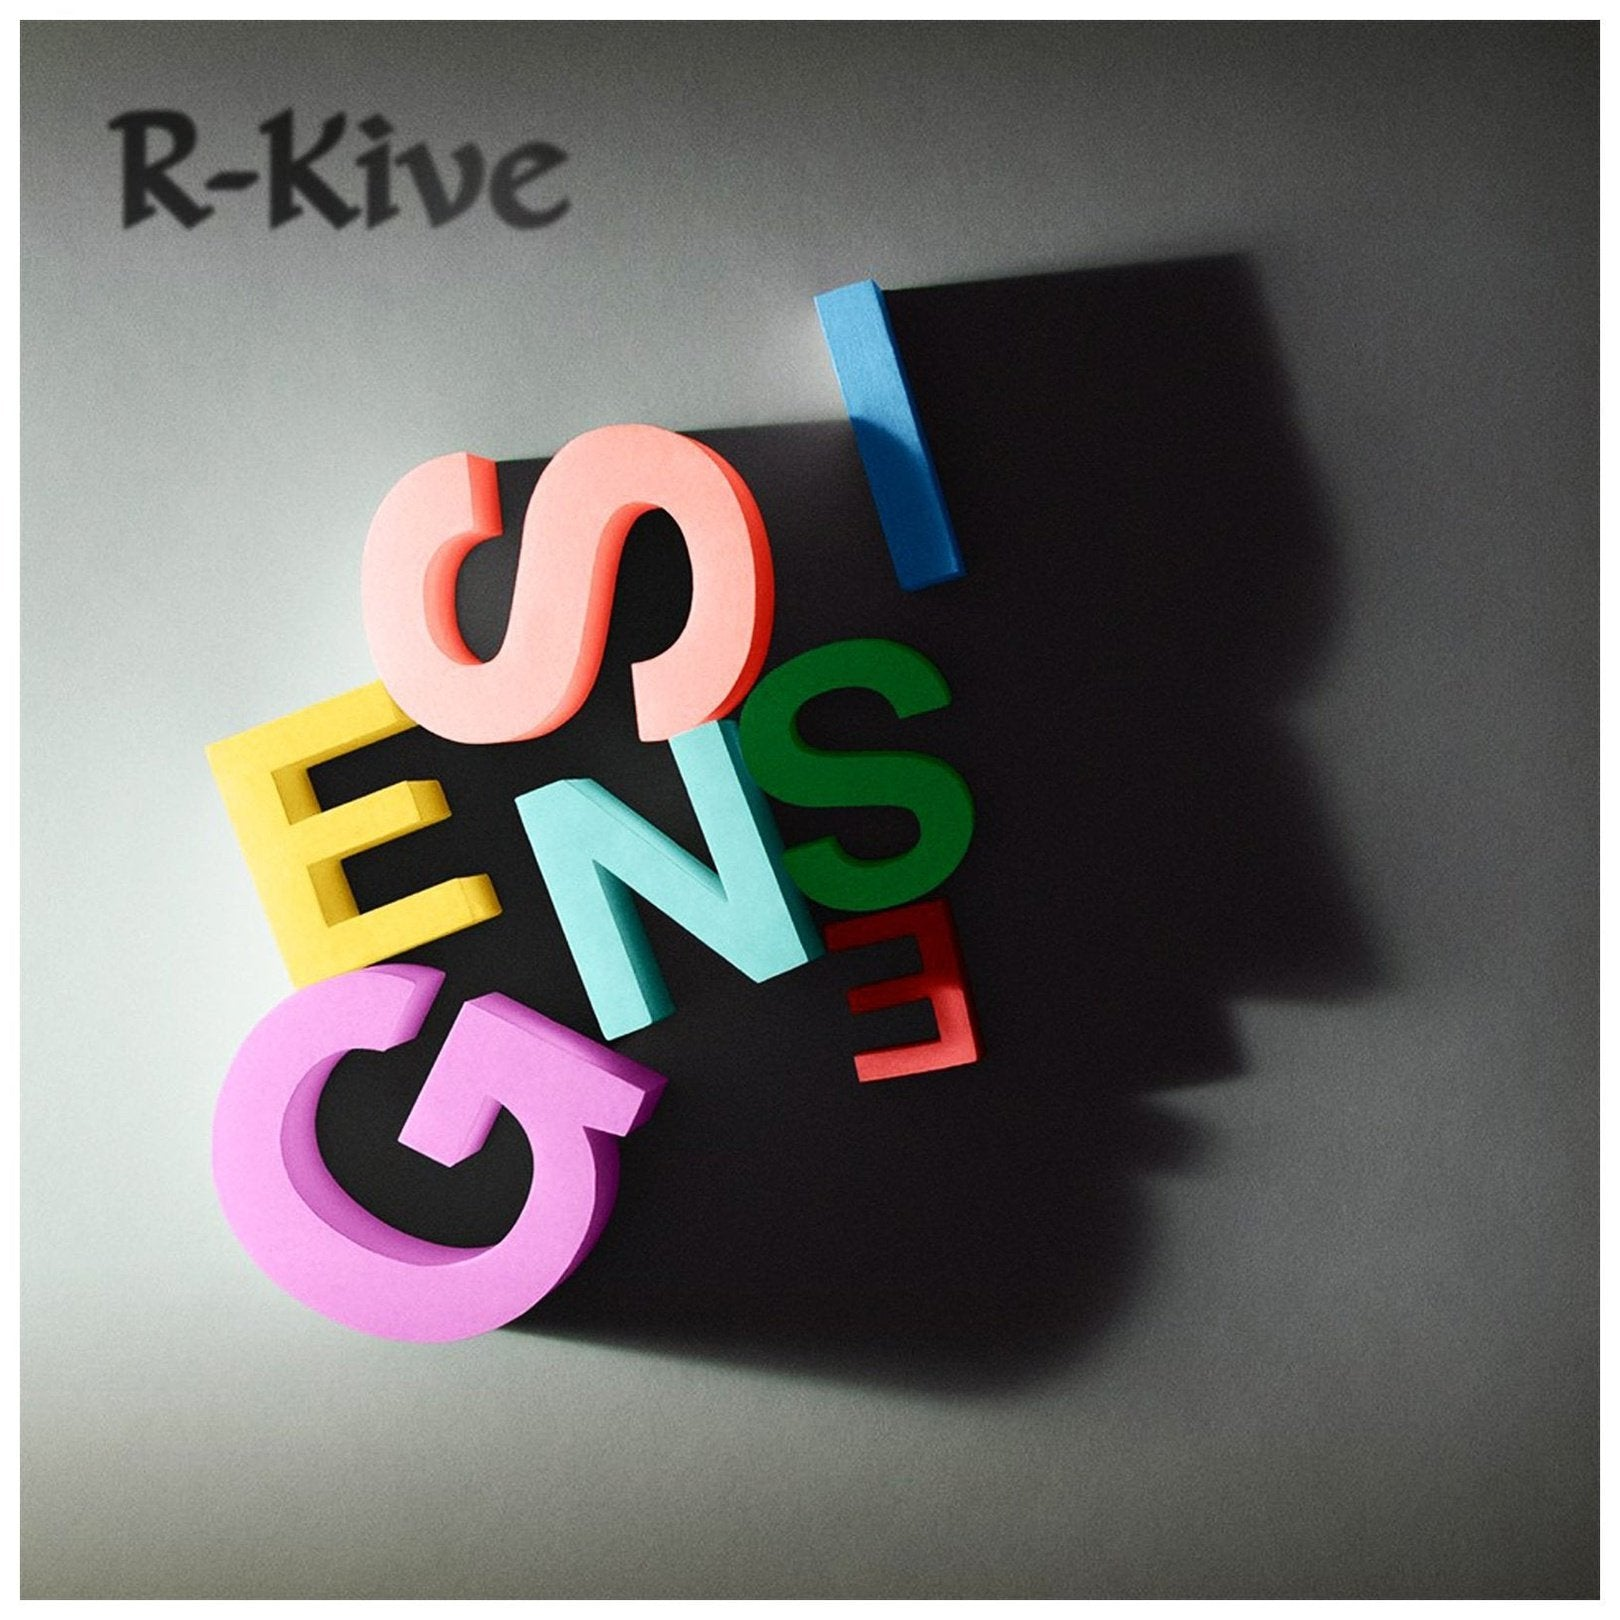 Genesis - Genesis - R-kive - 3 Cd Box Set